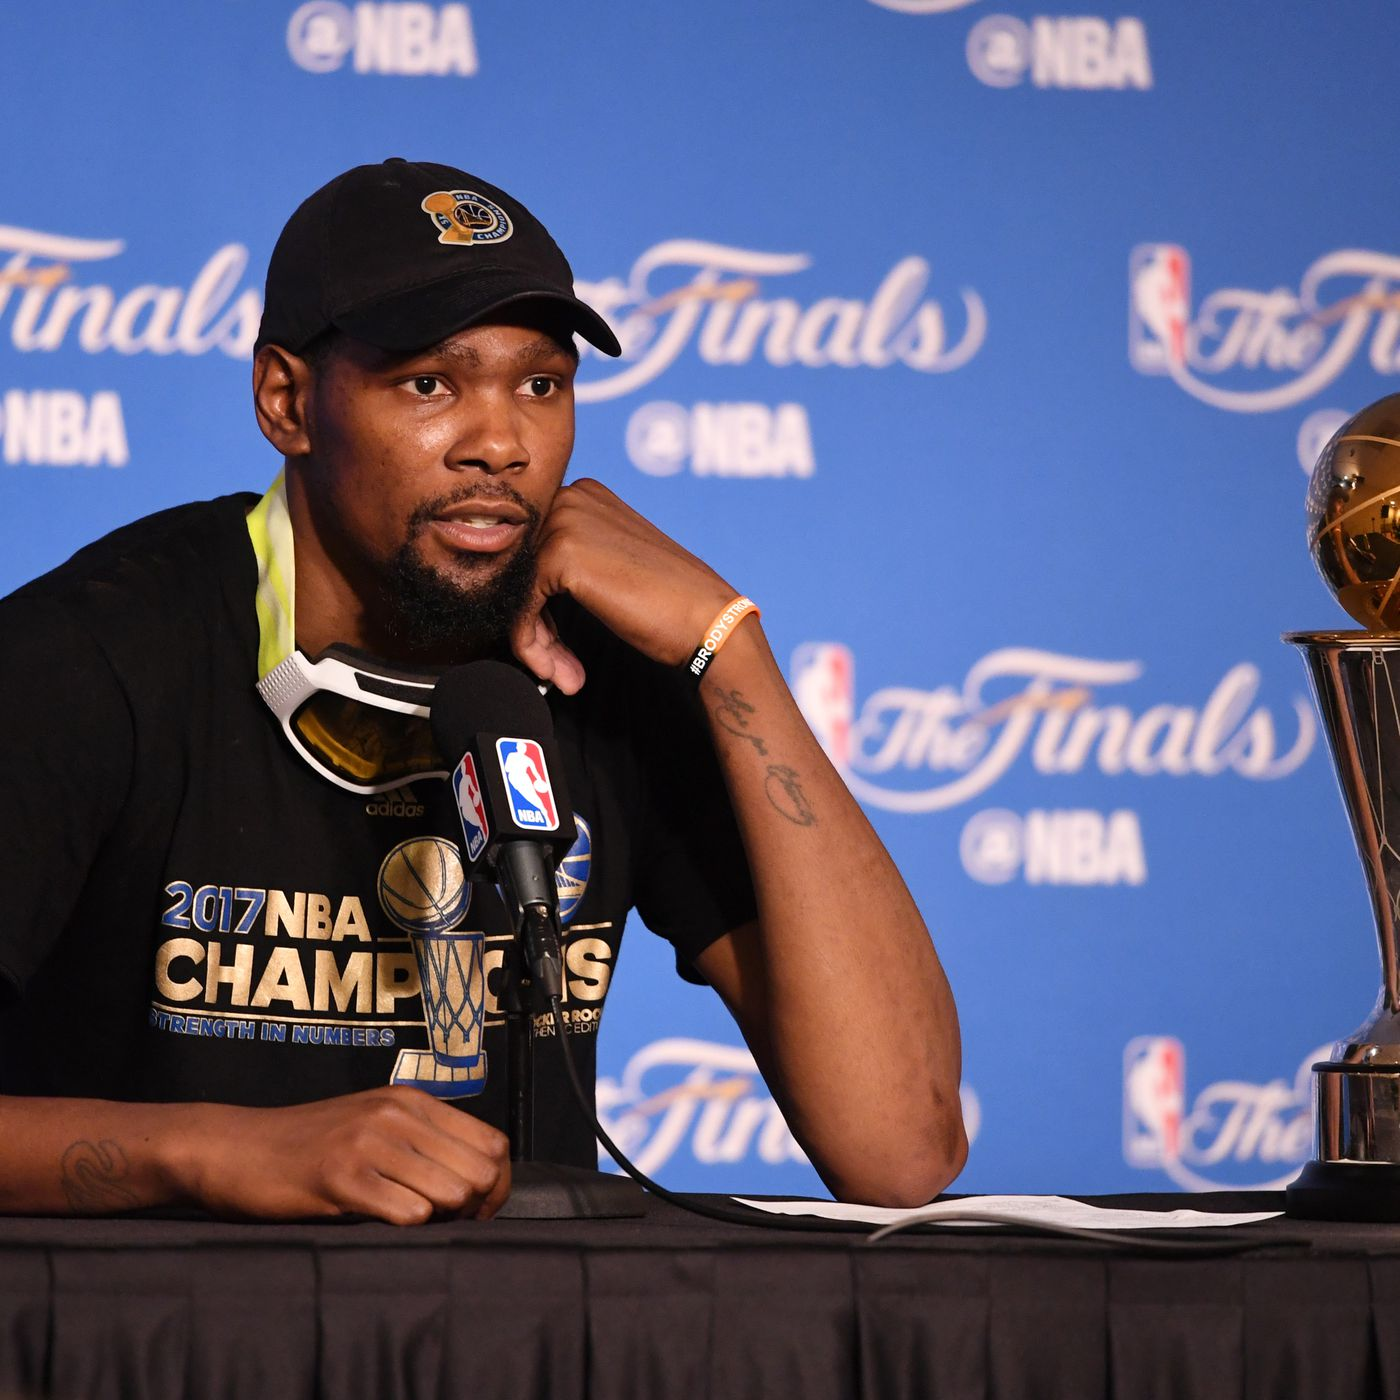 787cbe4eb870 Kevin Durant s alleged burner accounts are incredibly lame and totally  understandable. New ...